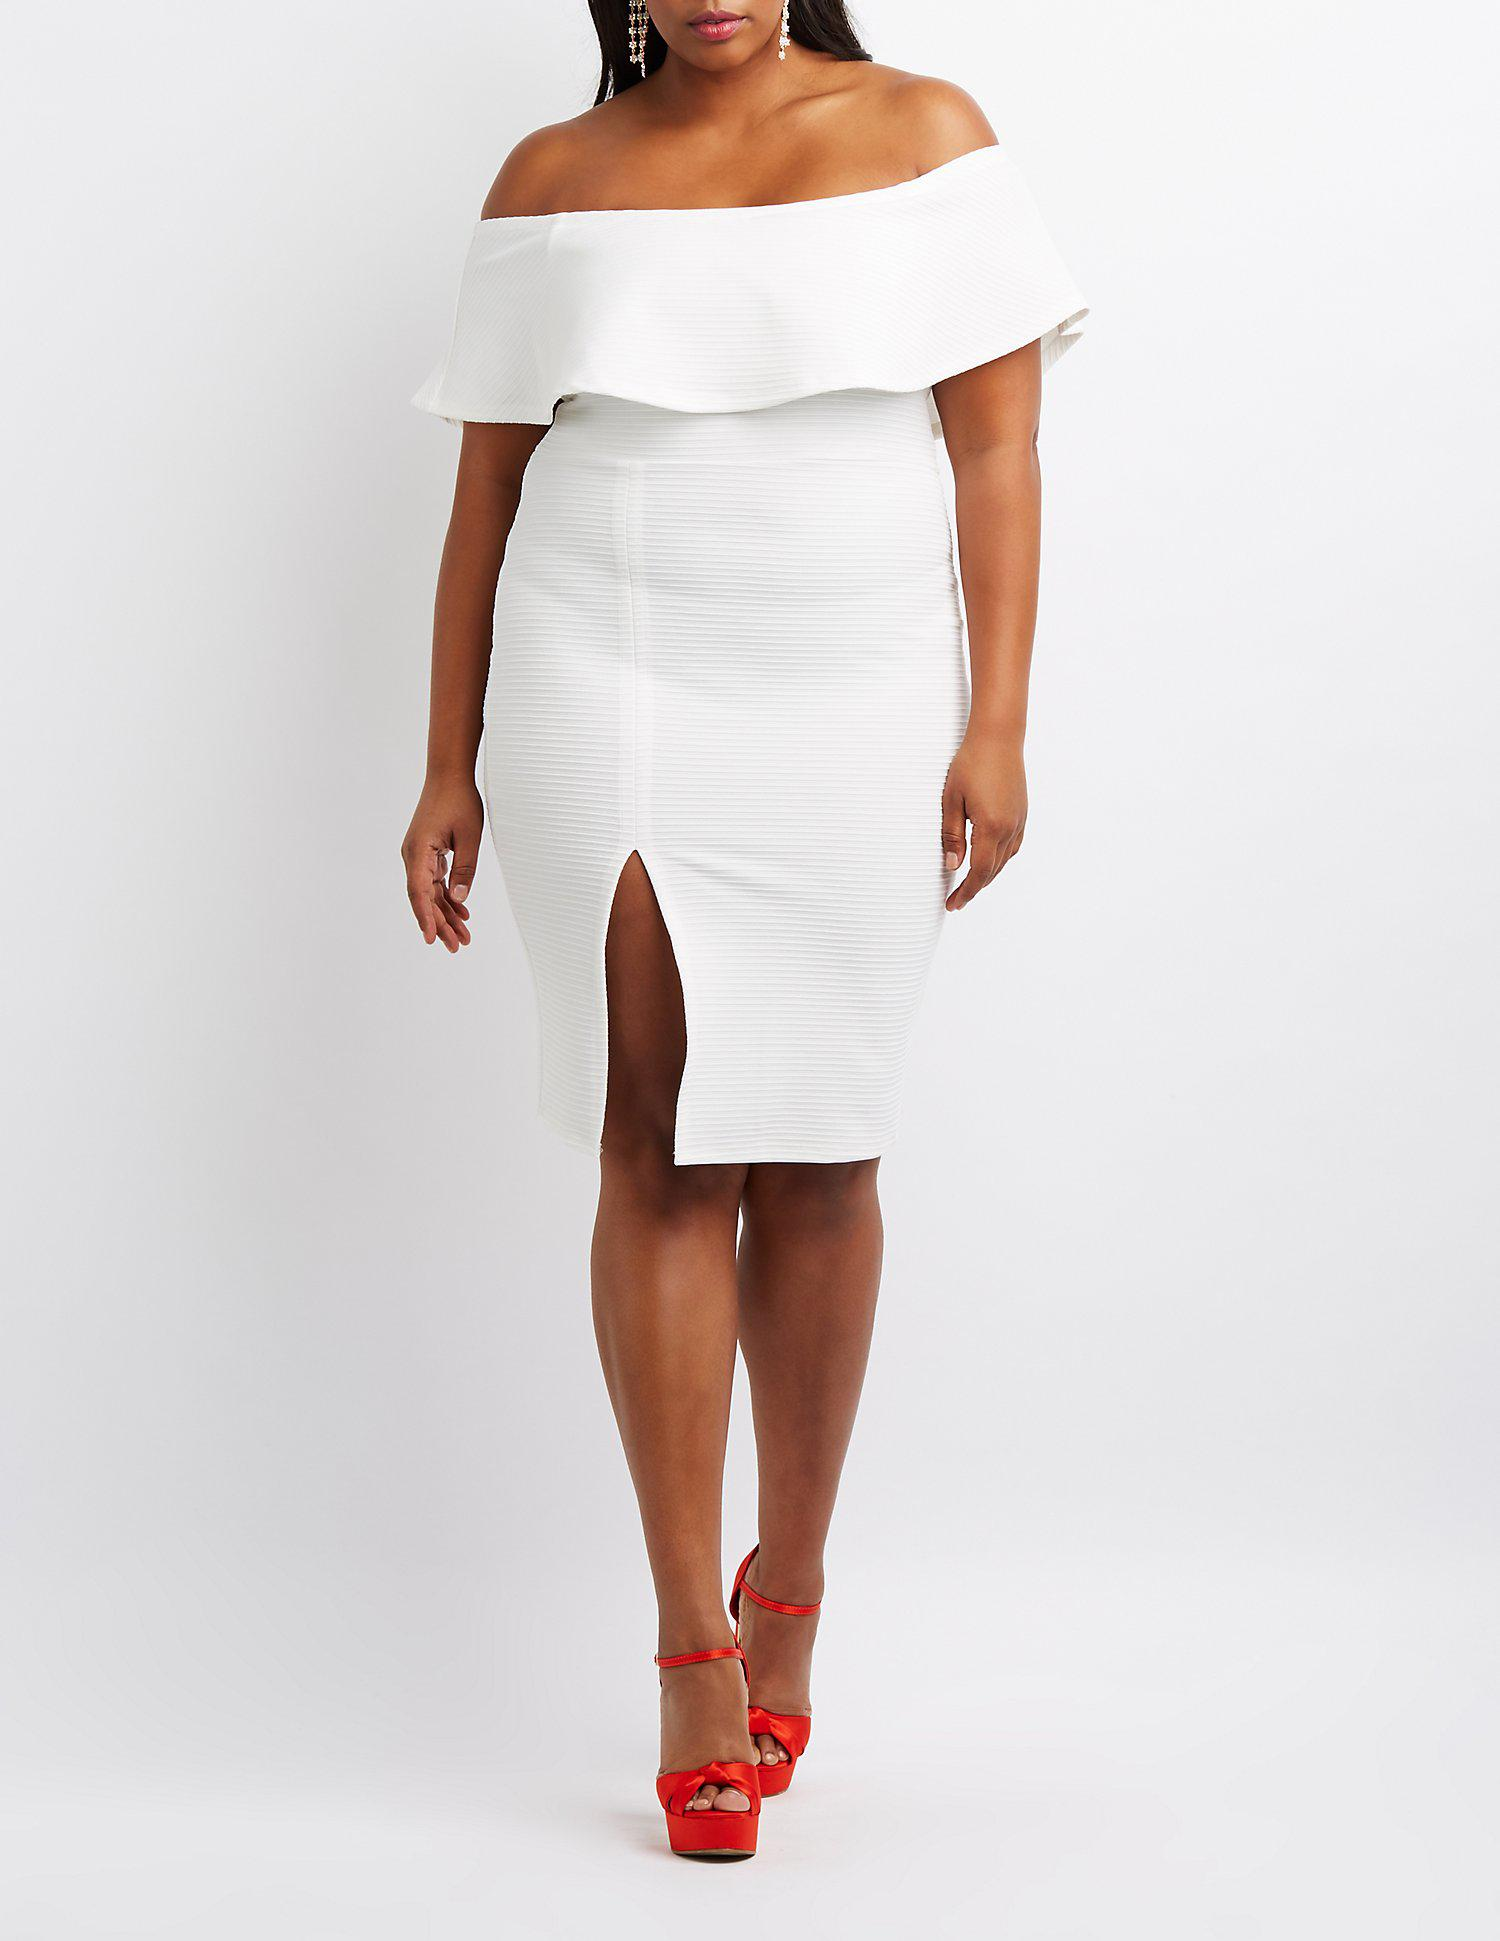 4f6689bce65 Lyst - Charlotte Russe Plus Size Textured Off-the-shoulder Bodycon ...